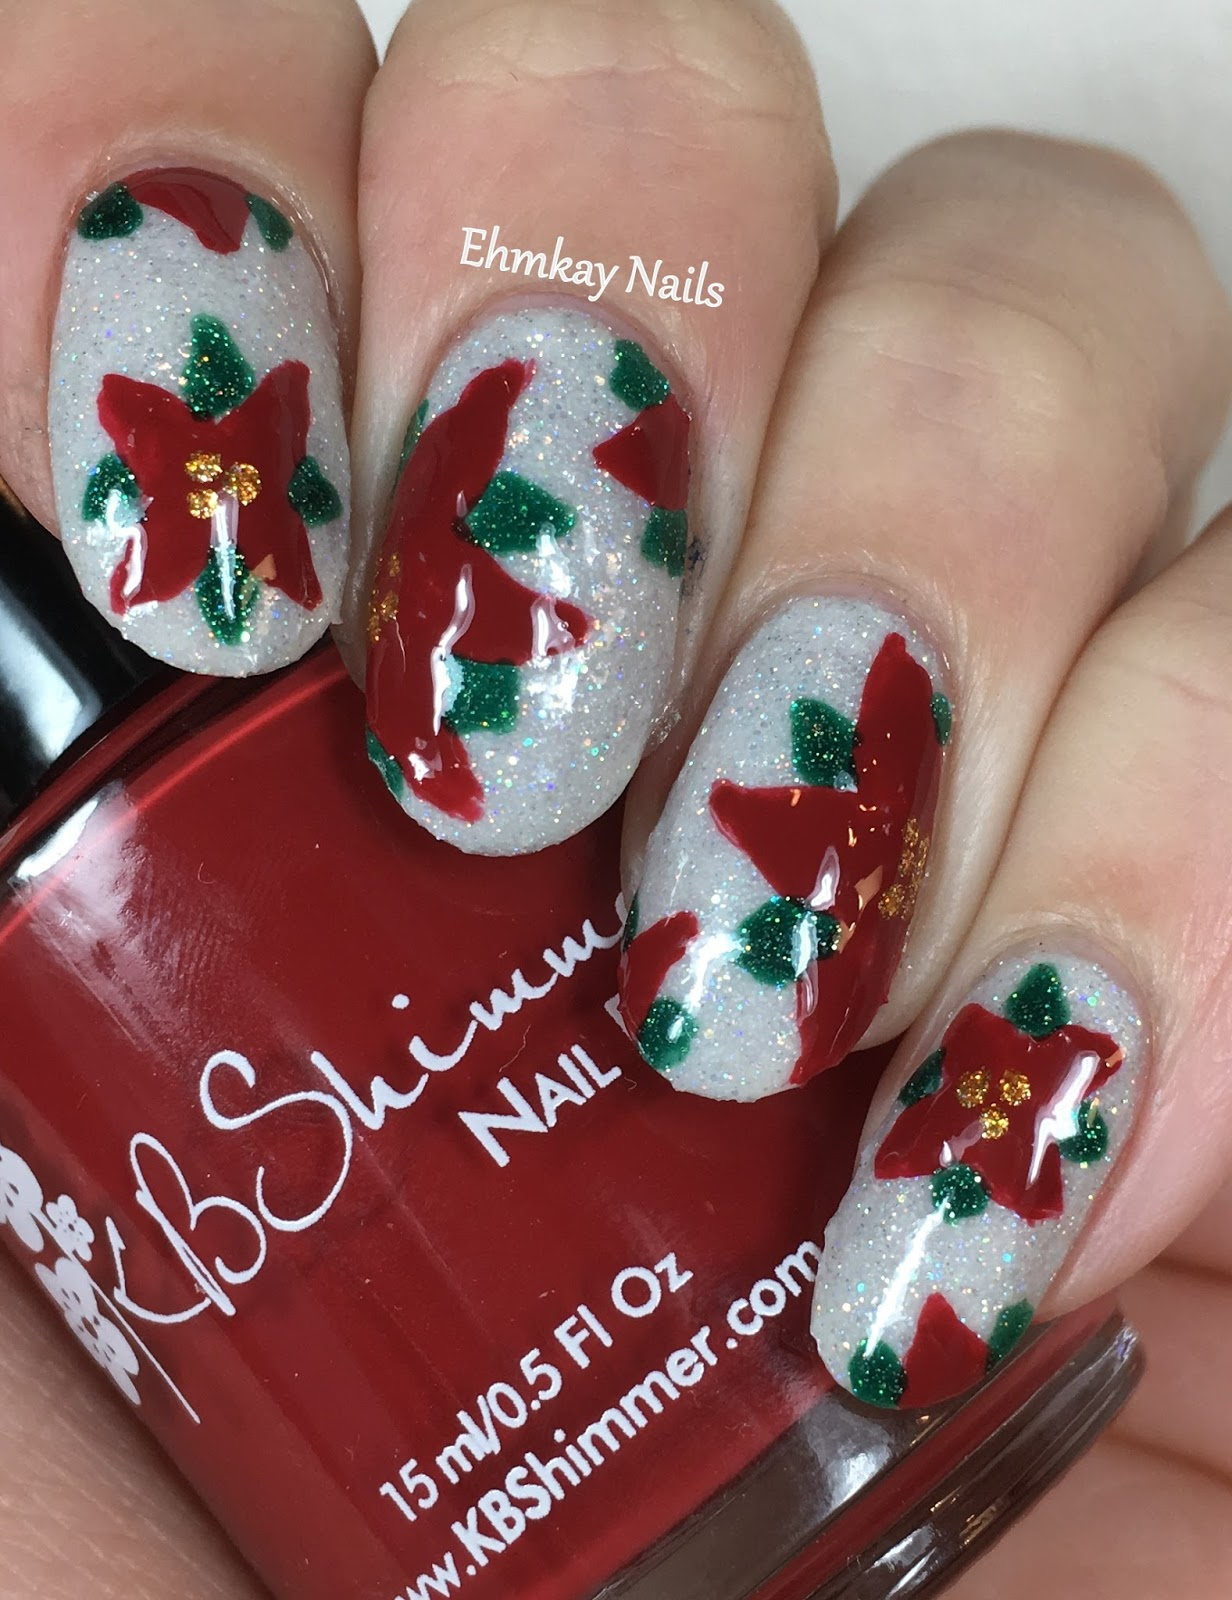 Ehmkay Nails Happy New Year S Eve Nail Art Stamping: Ehmkay Nails: Snowy Poinsettias With KBShimmer Holiday 2016